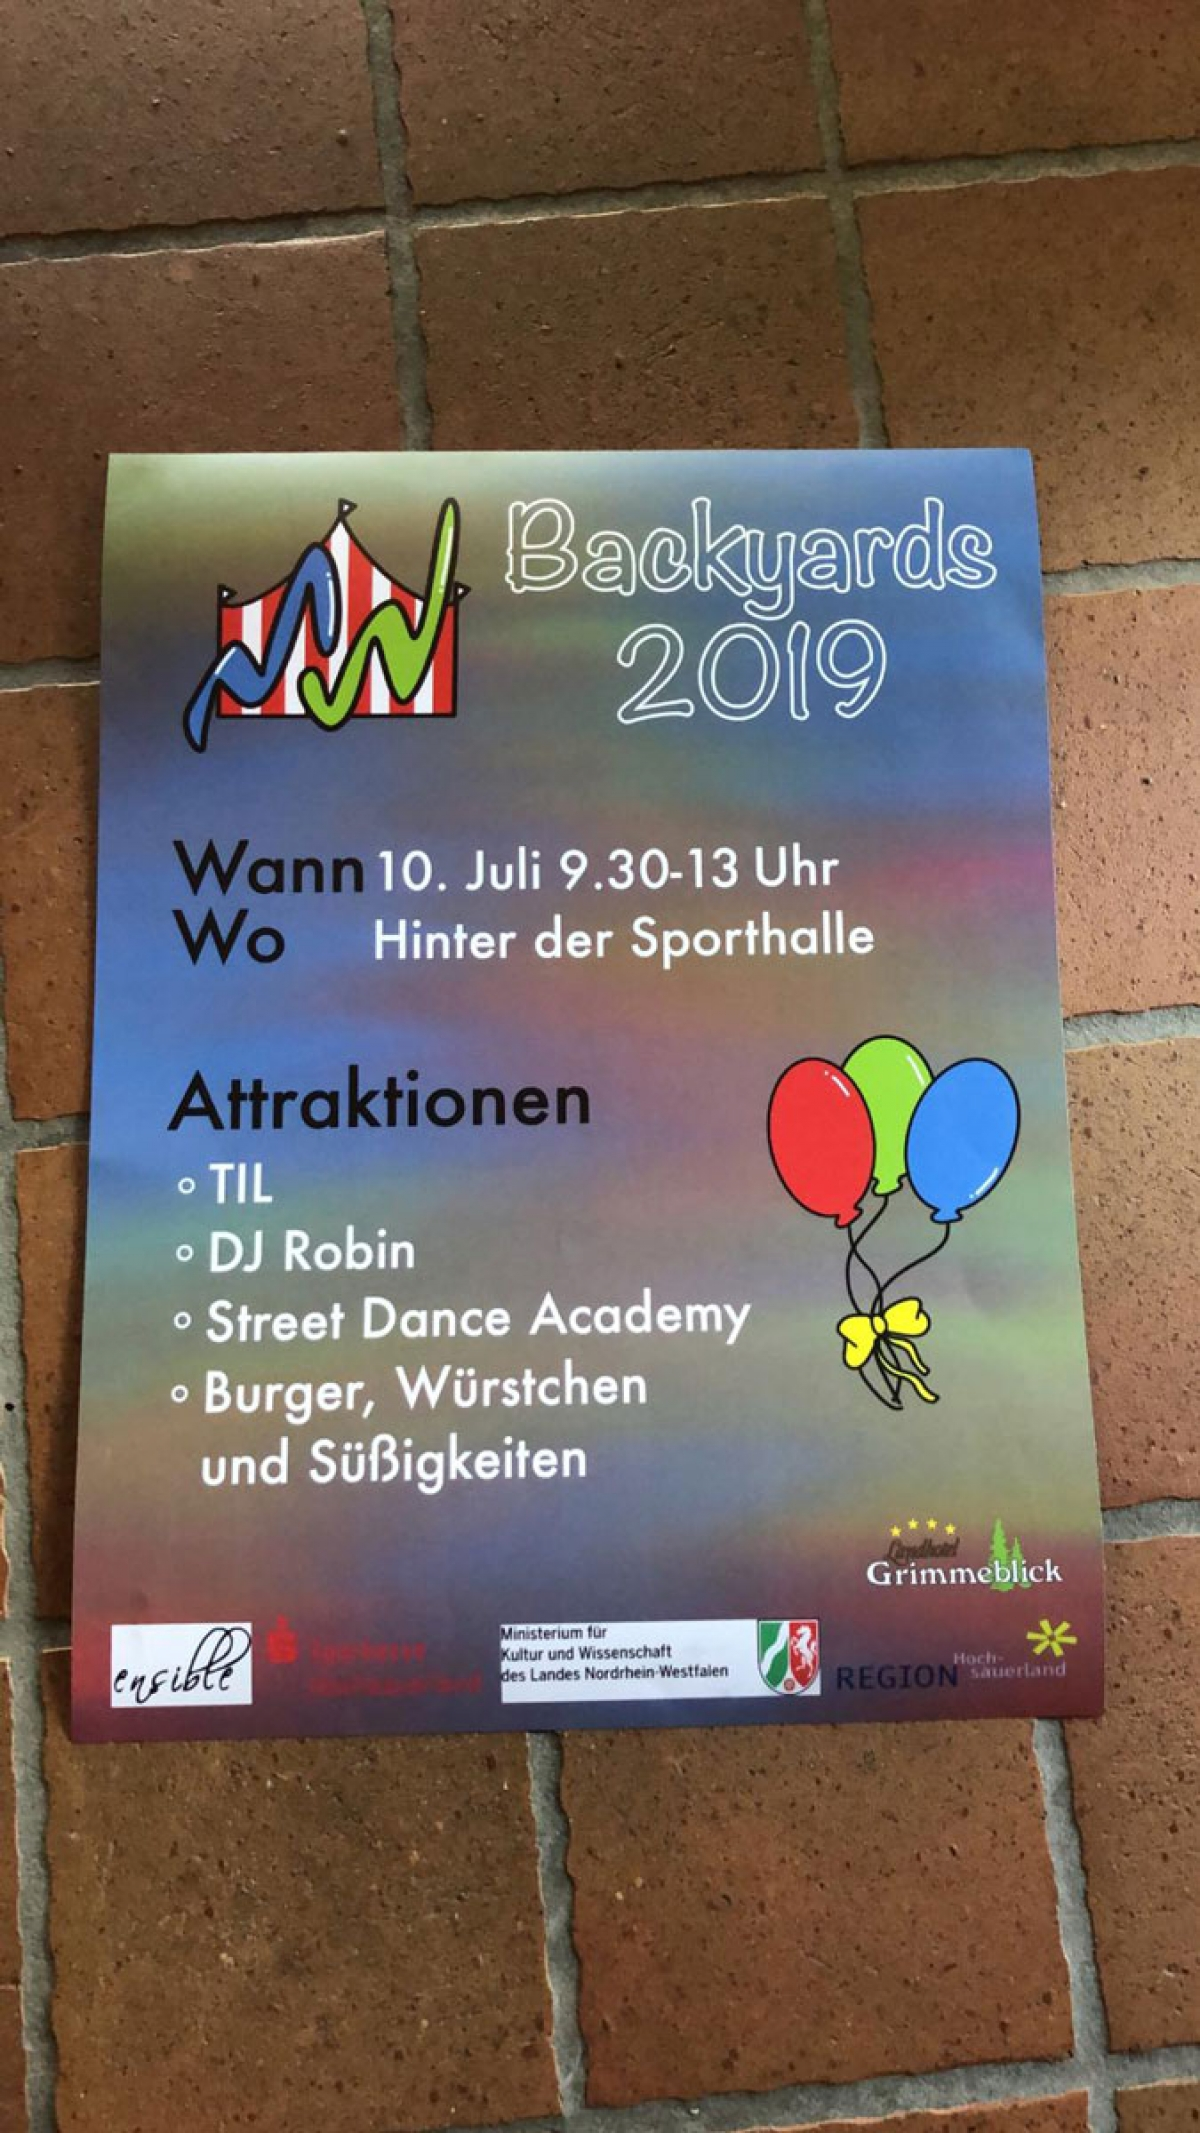 Backyards-Schulhoffestival 2019